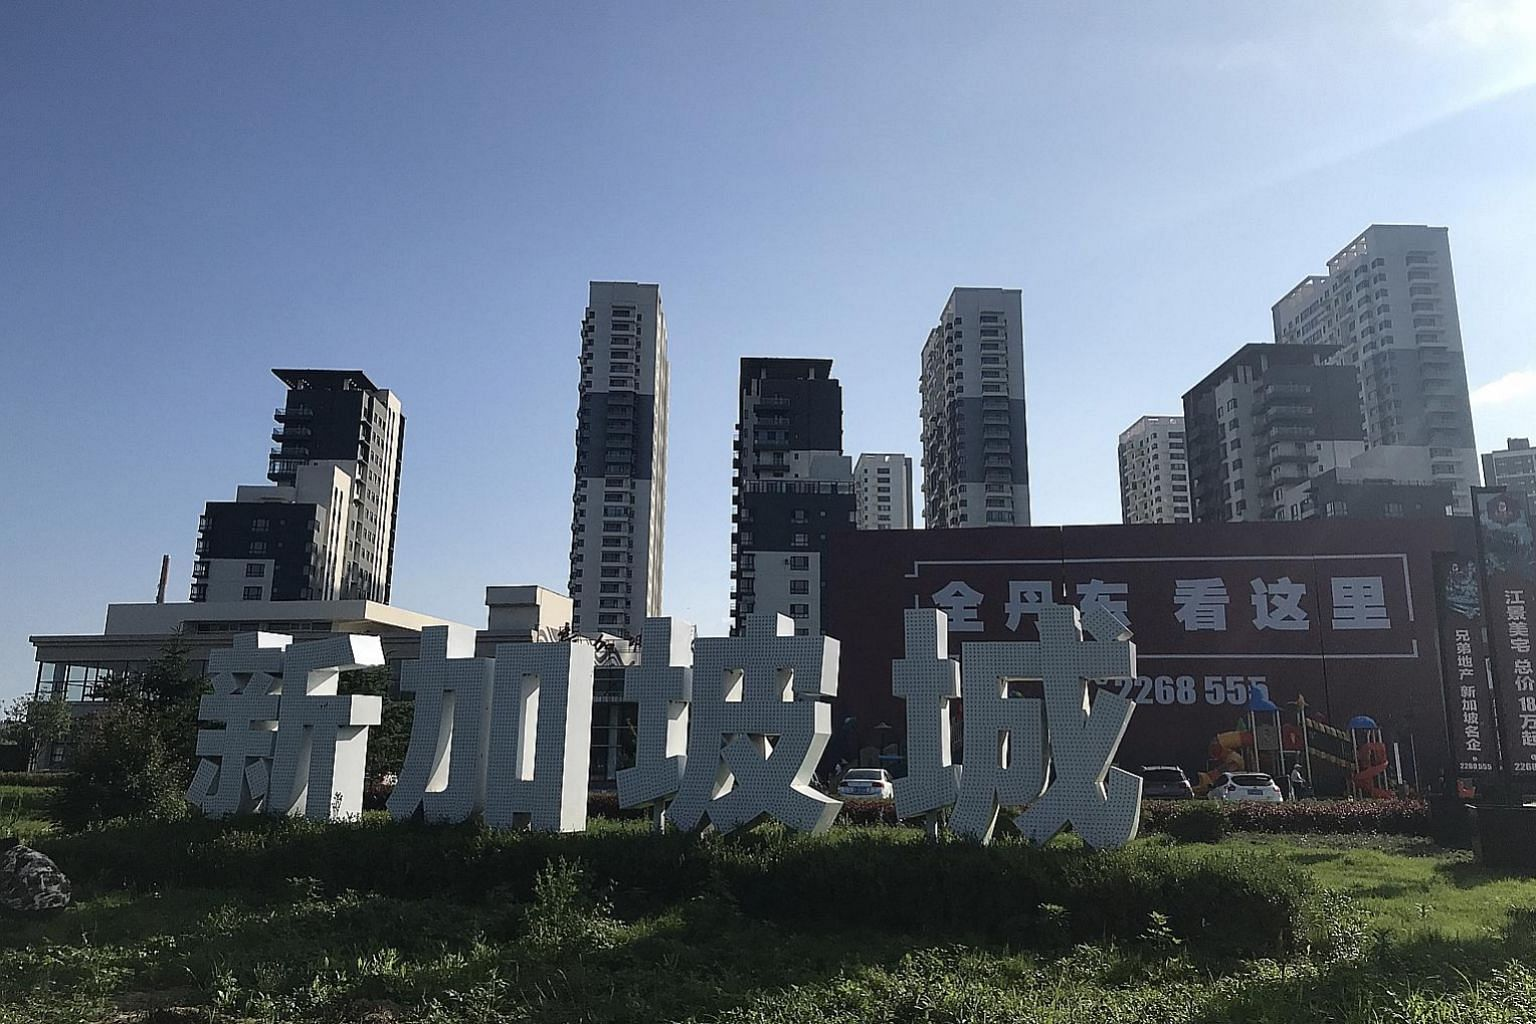 Singapore City is one of many residential developments to have come up in Dandong New District in Liaoning. Mr Feng Zhongbo, 53 and Ms Wei Liping, 36, are among the first buyers of apartments in Singapore City.